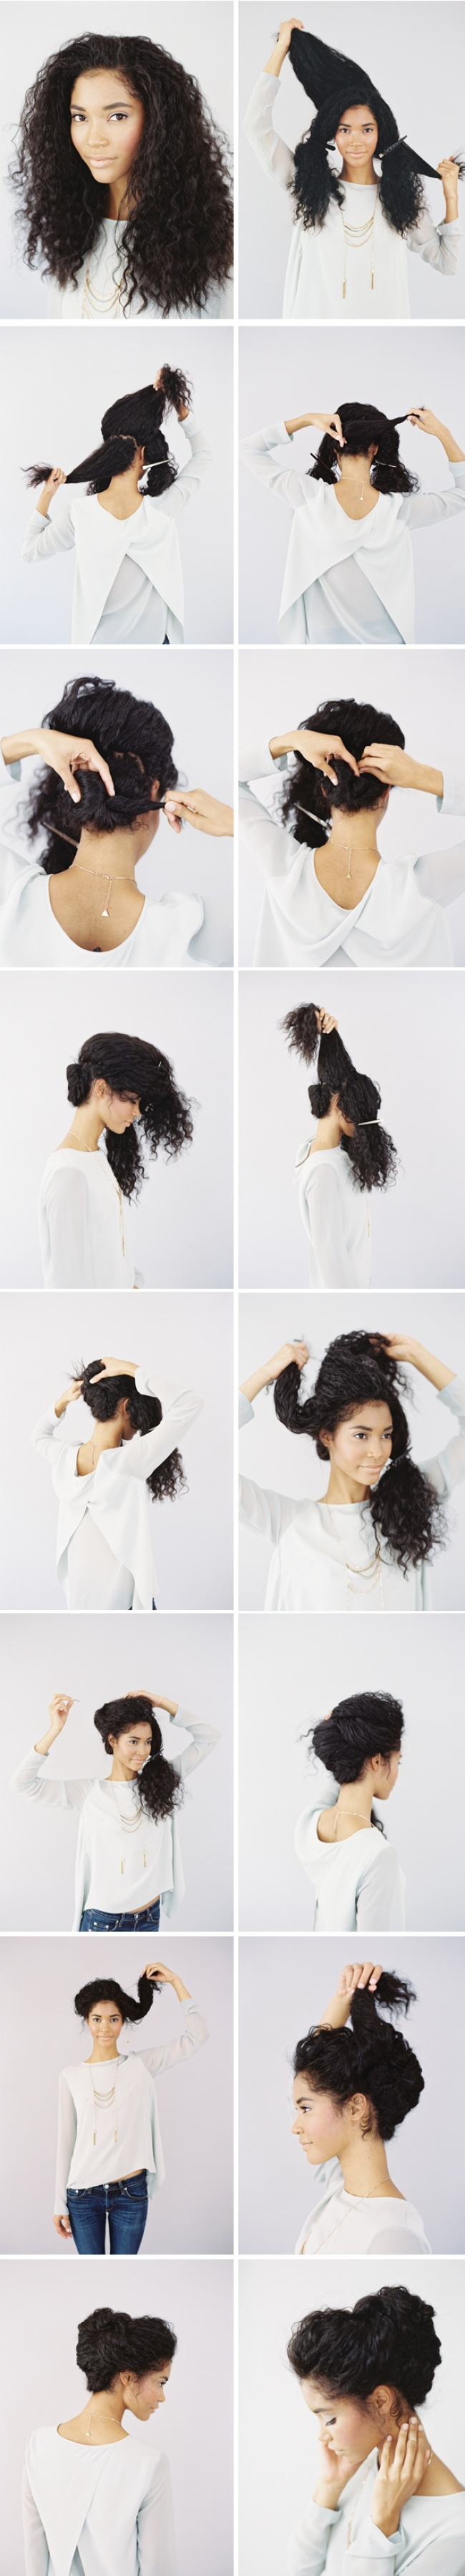 3244105-how-to-updo-naurally-curly-hair-1467842543-650-4be393ce4b-1492168835